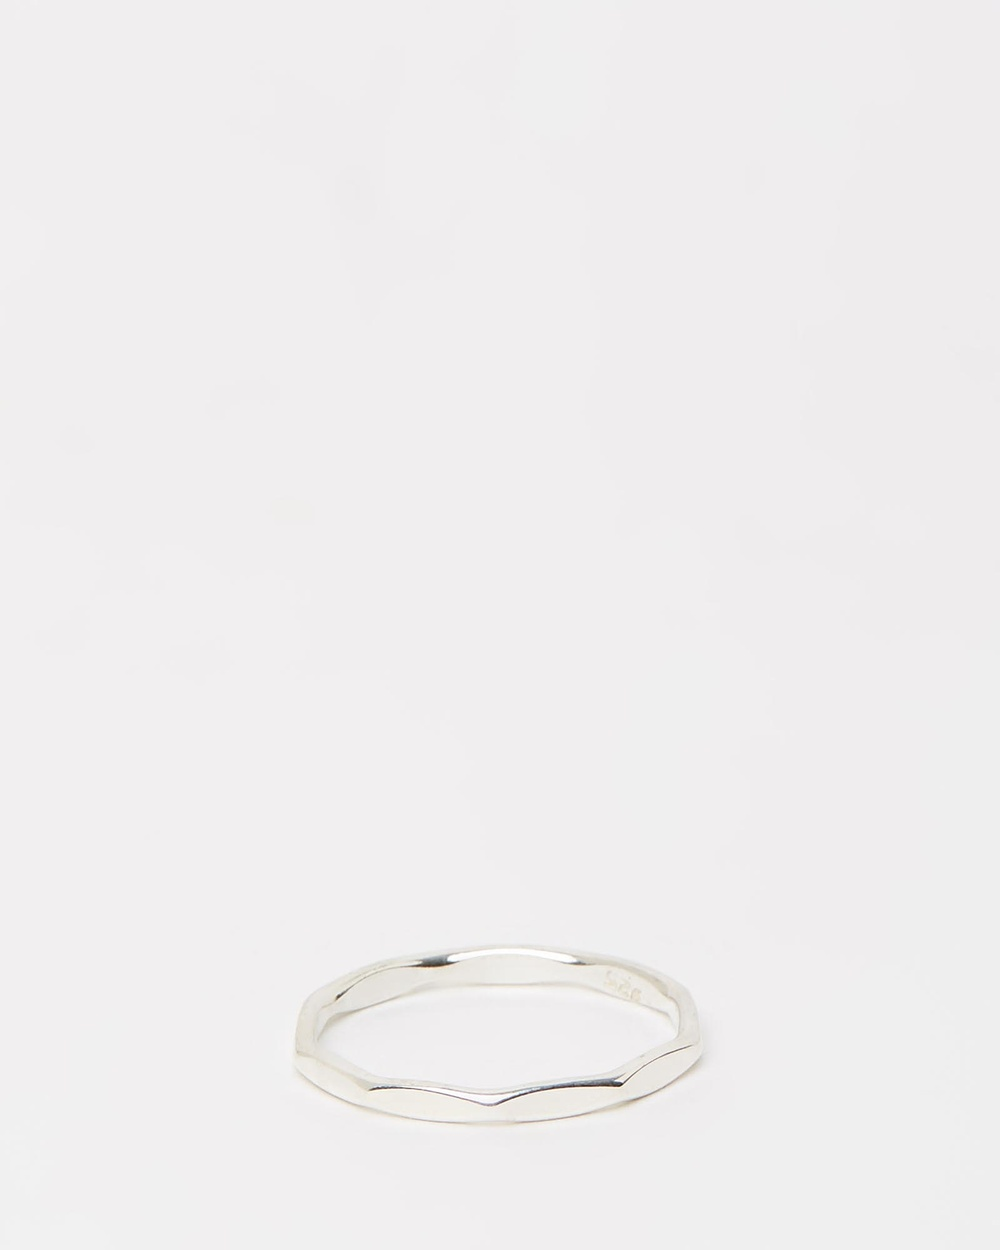 Ichu Edge Ring Jewellery 925 Sterling Silver